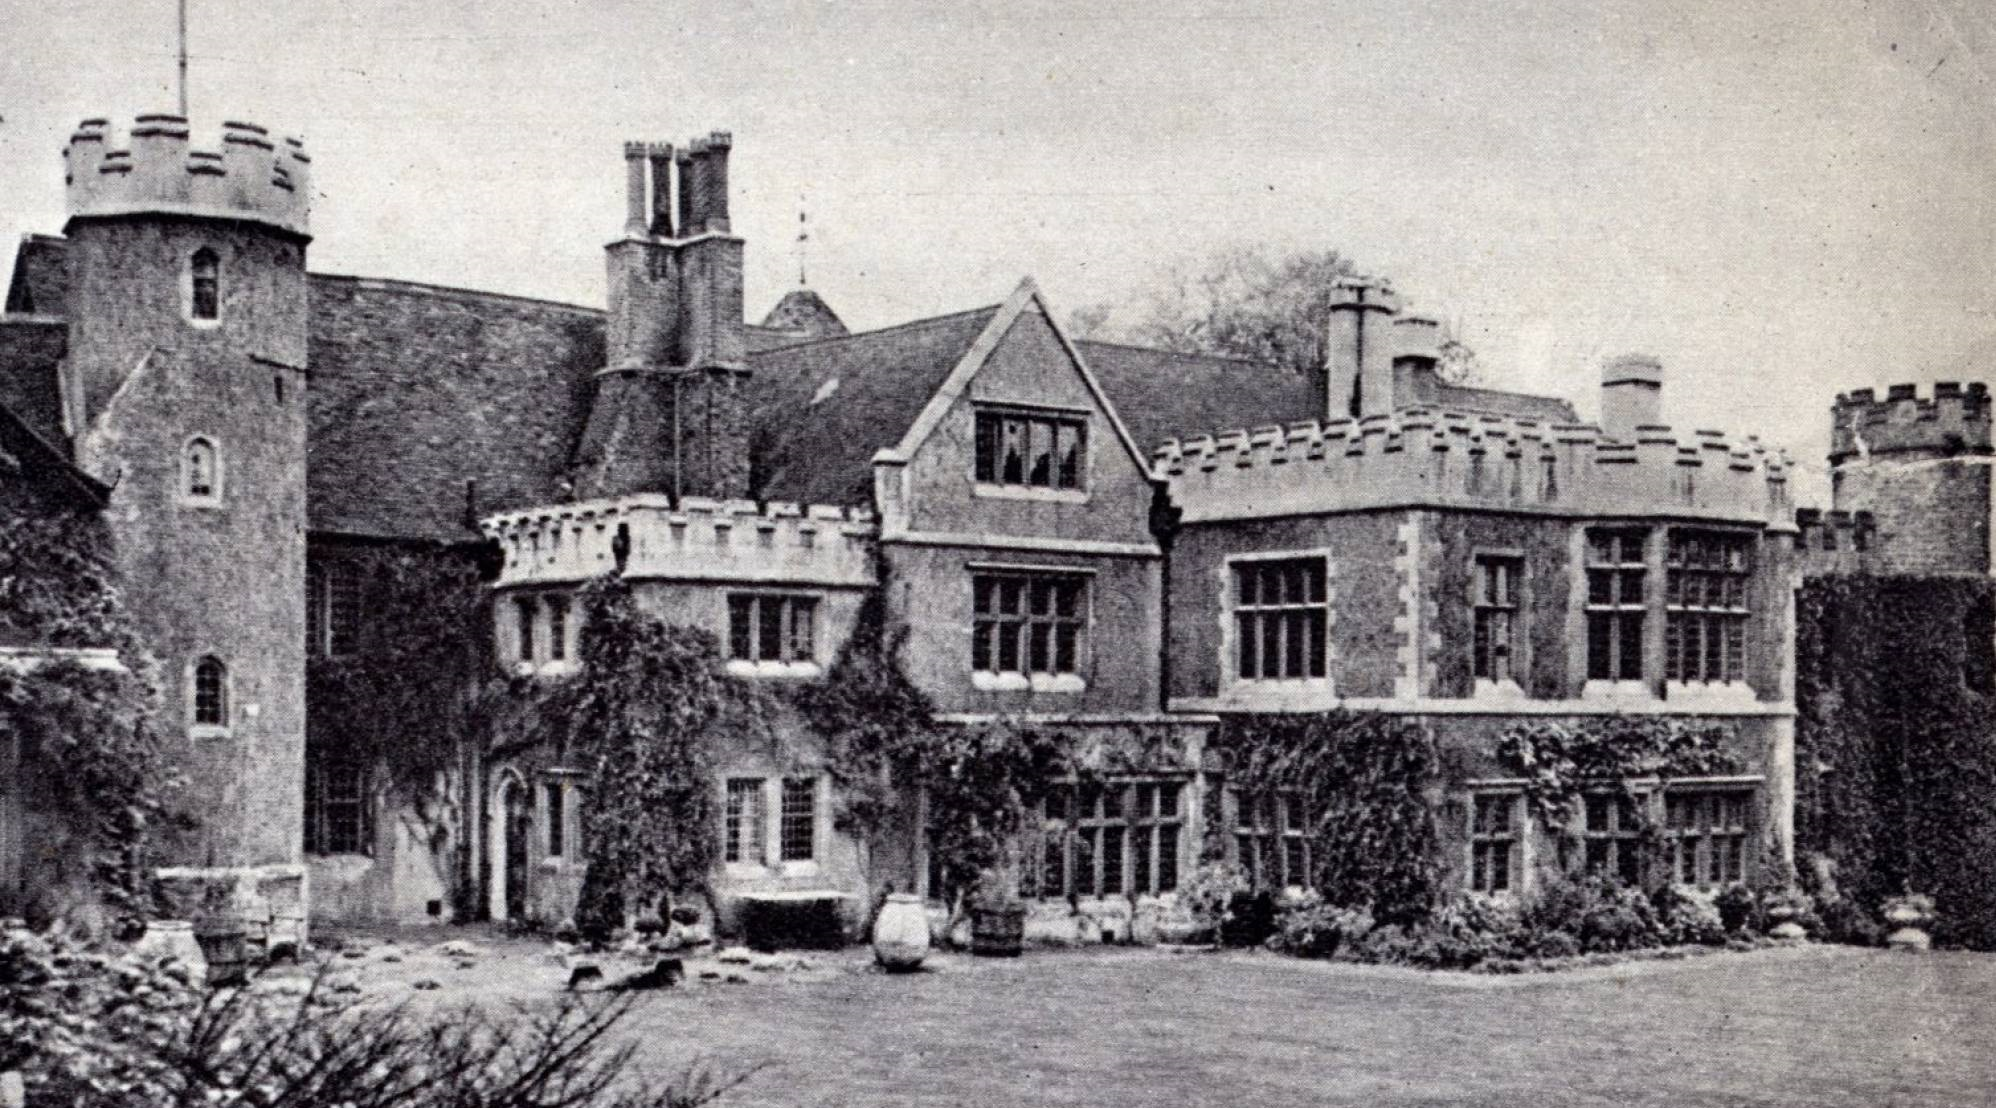 The_Old_Rectory_formerly_The_Parsonage,_Wimbledon